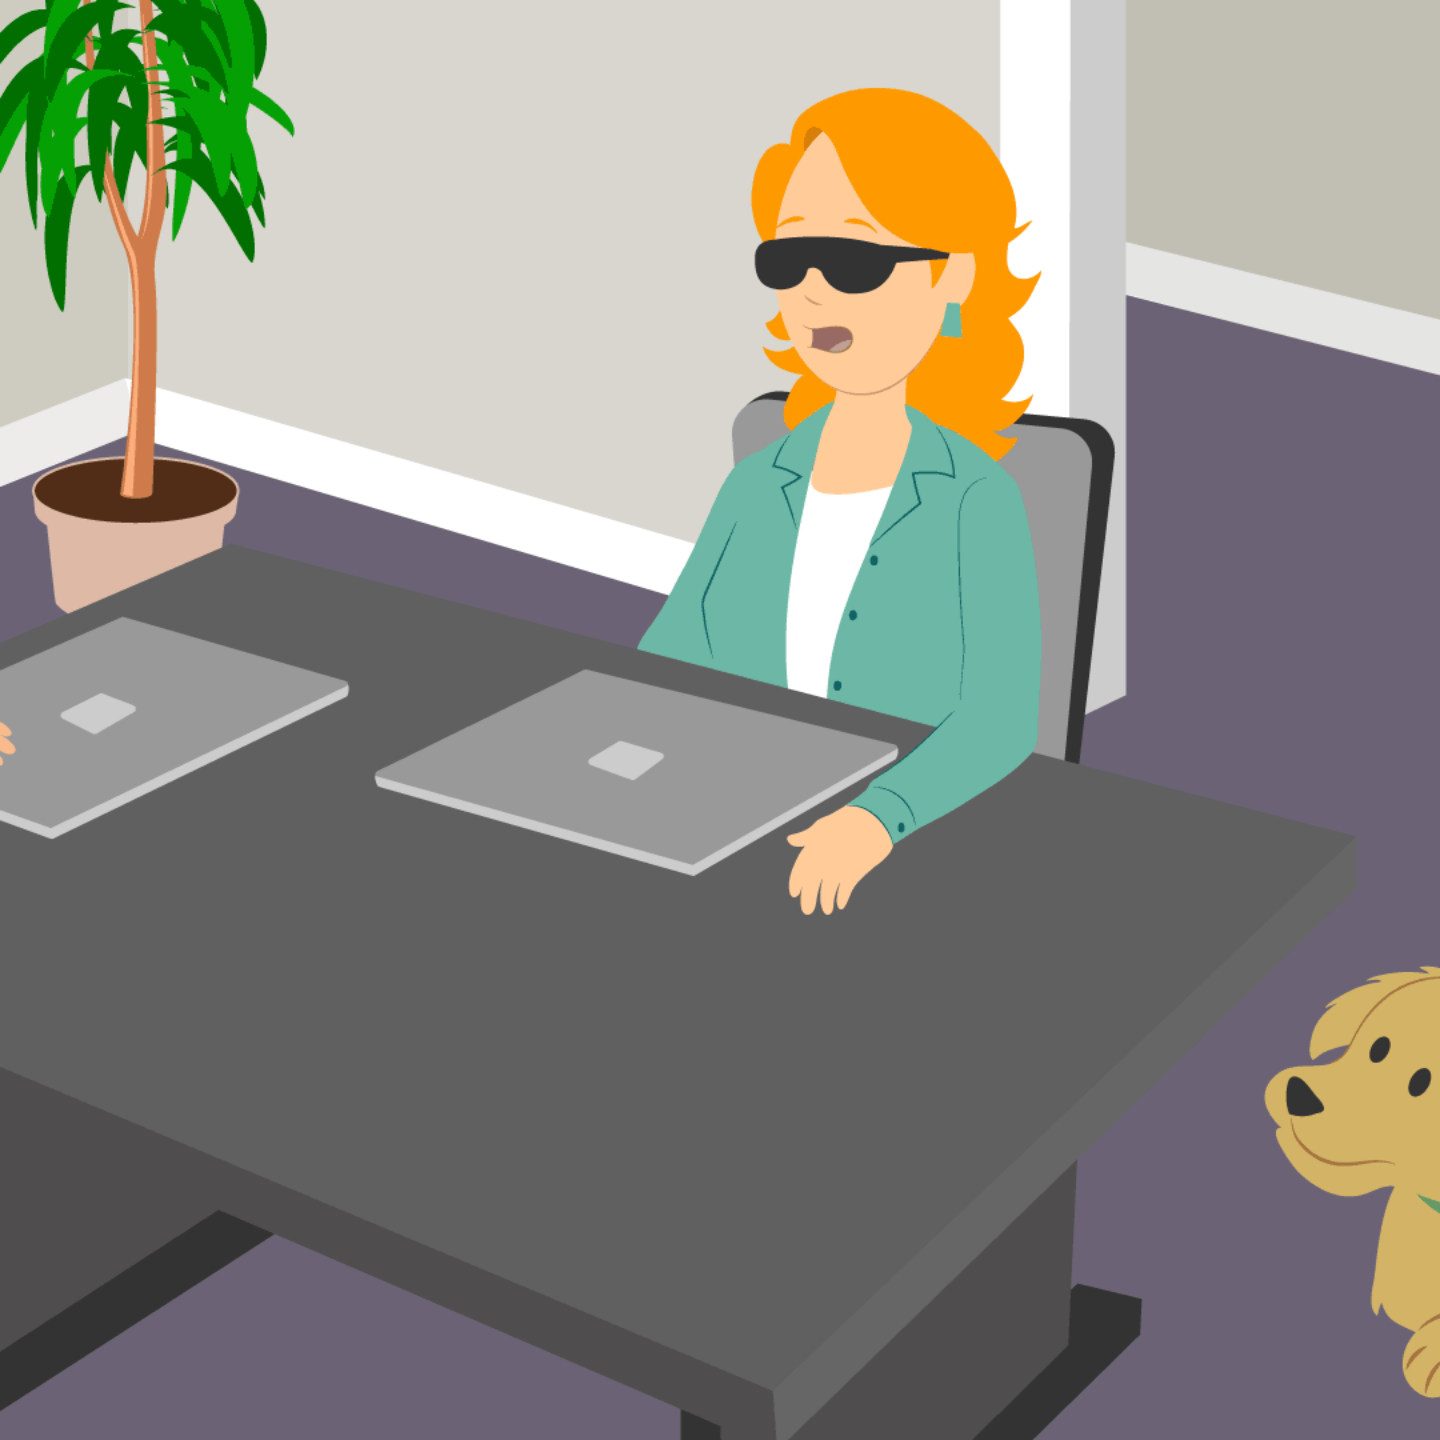 Illustration of blind woman with service dog and another person in work setting.